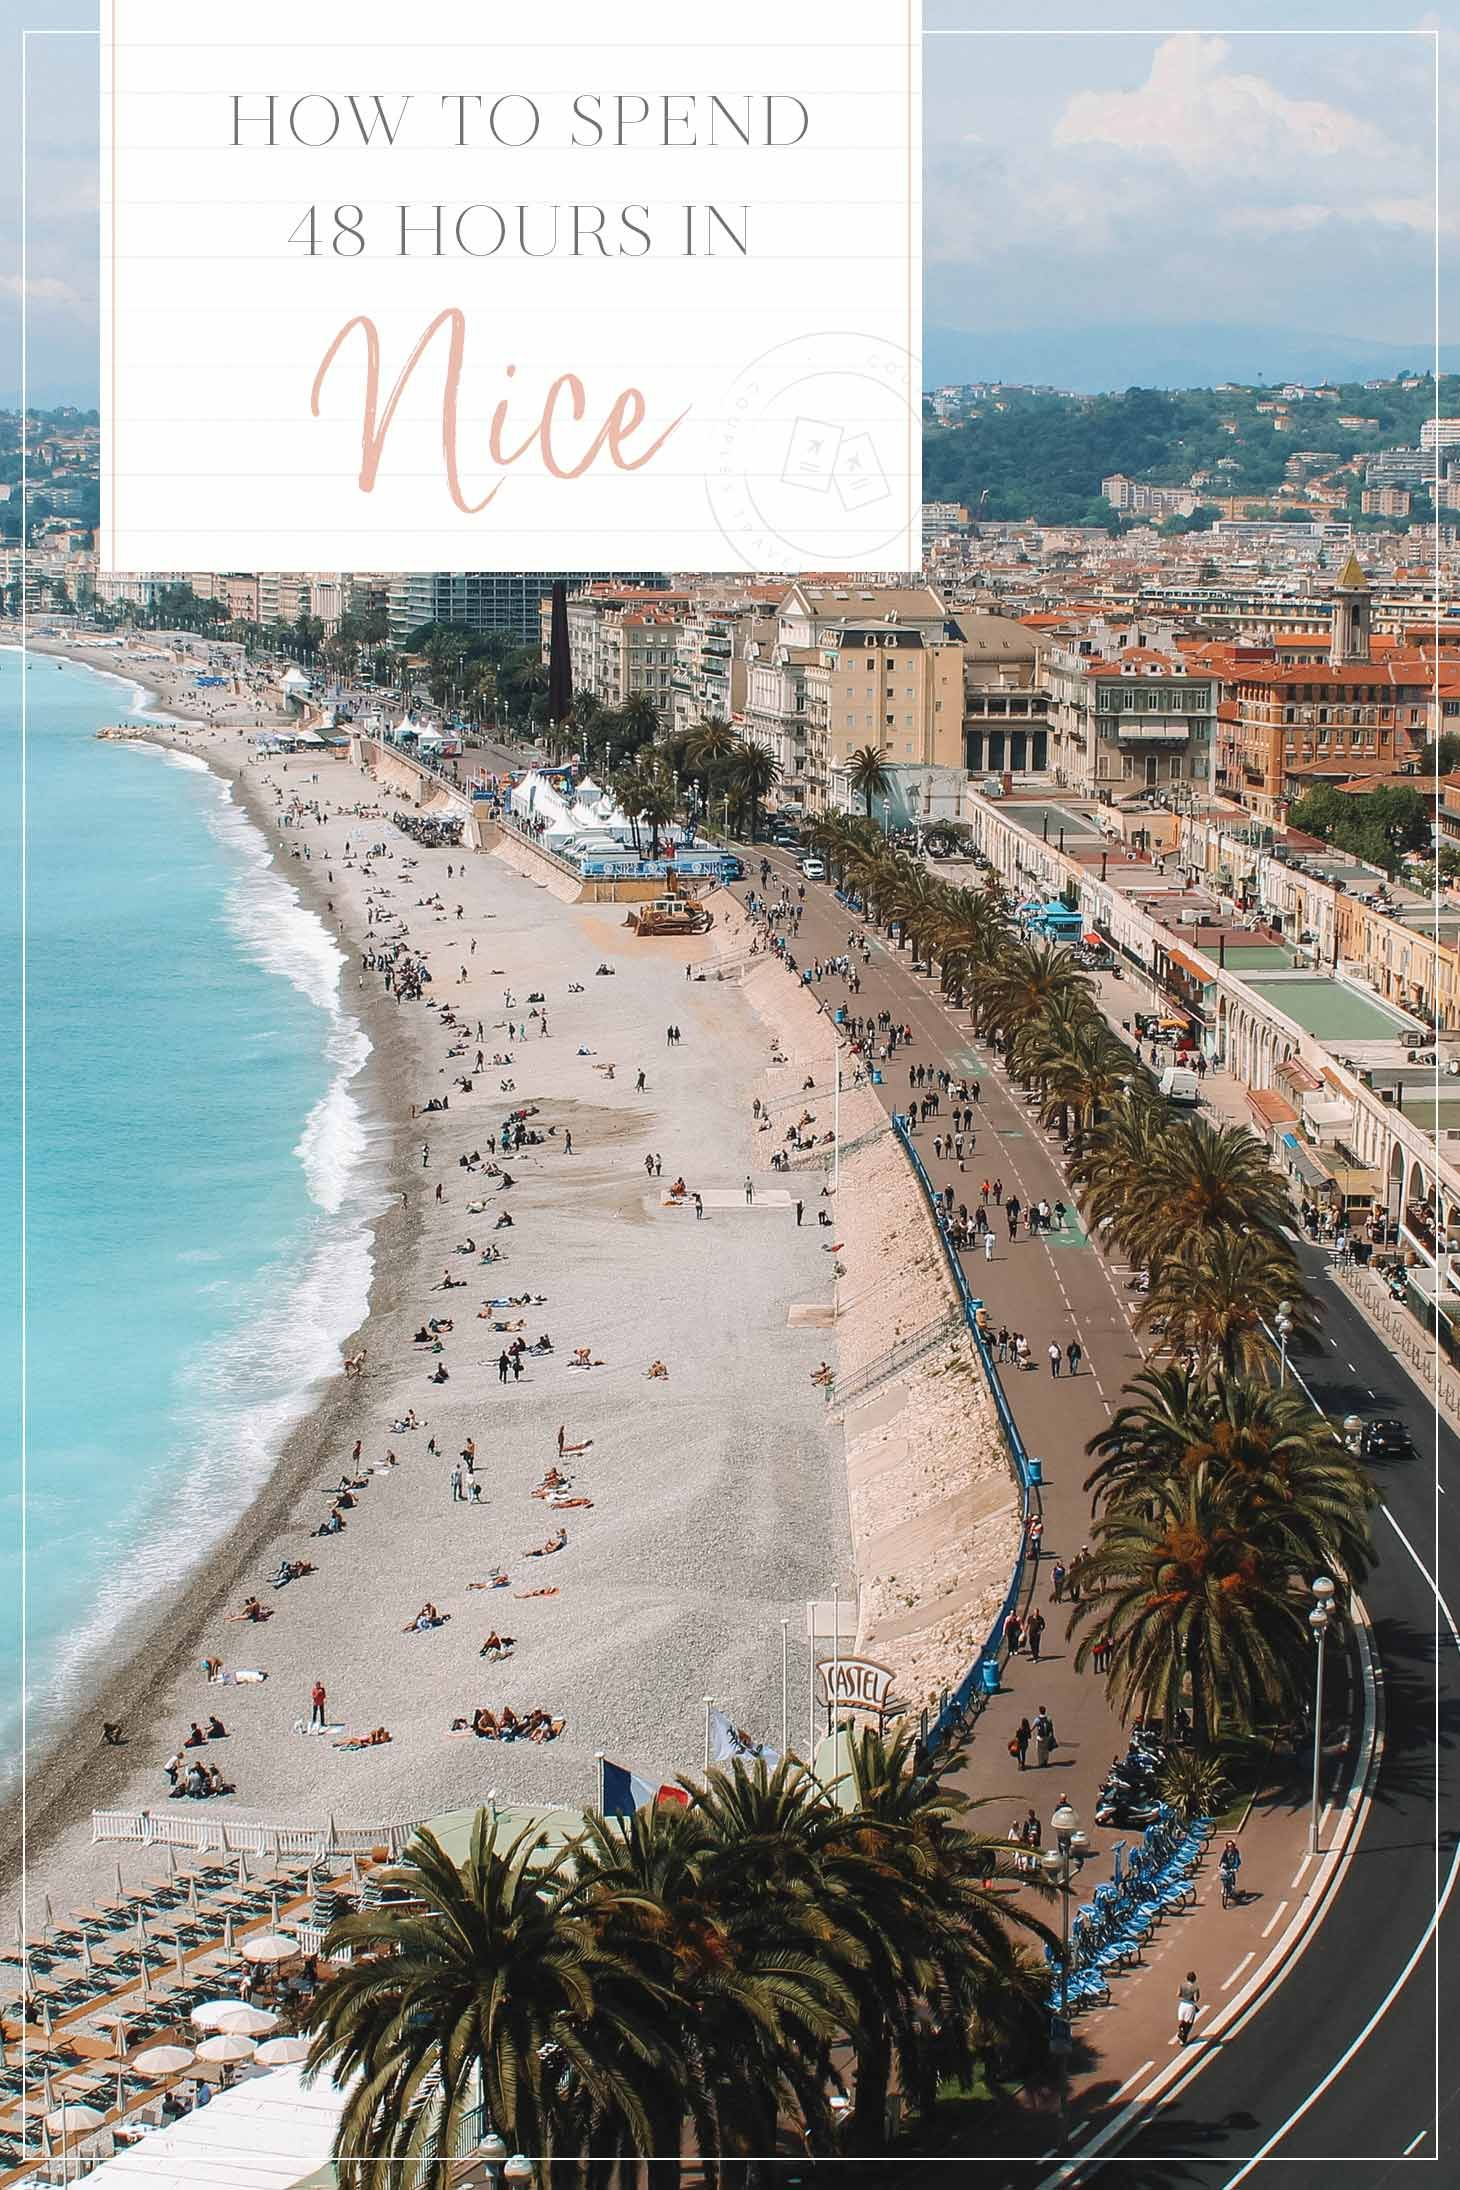 Located on the French Rivera,Nicehas everything you need for a quintessential weekend away. It boasts year-around sunshine, gorgeous beaches, an intriguing history, museums, and a booming restaurant scene.Plus, it's a city for all budgets and more affordable than it's glamorous neighbors Cannes and St. Tropez. Here is my guide to 48 hours in Nice, France!   France Travel Tips   France Travel Guide   #nice #france #traveltips